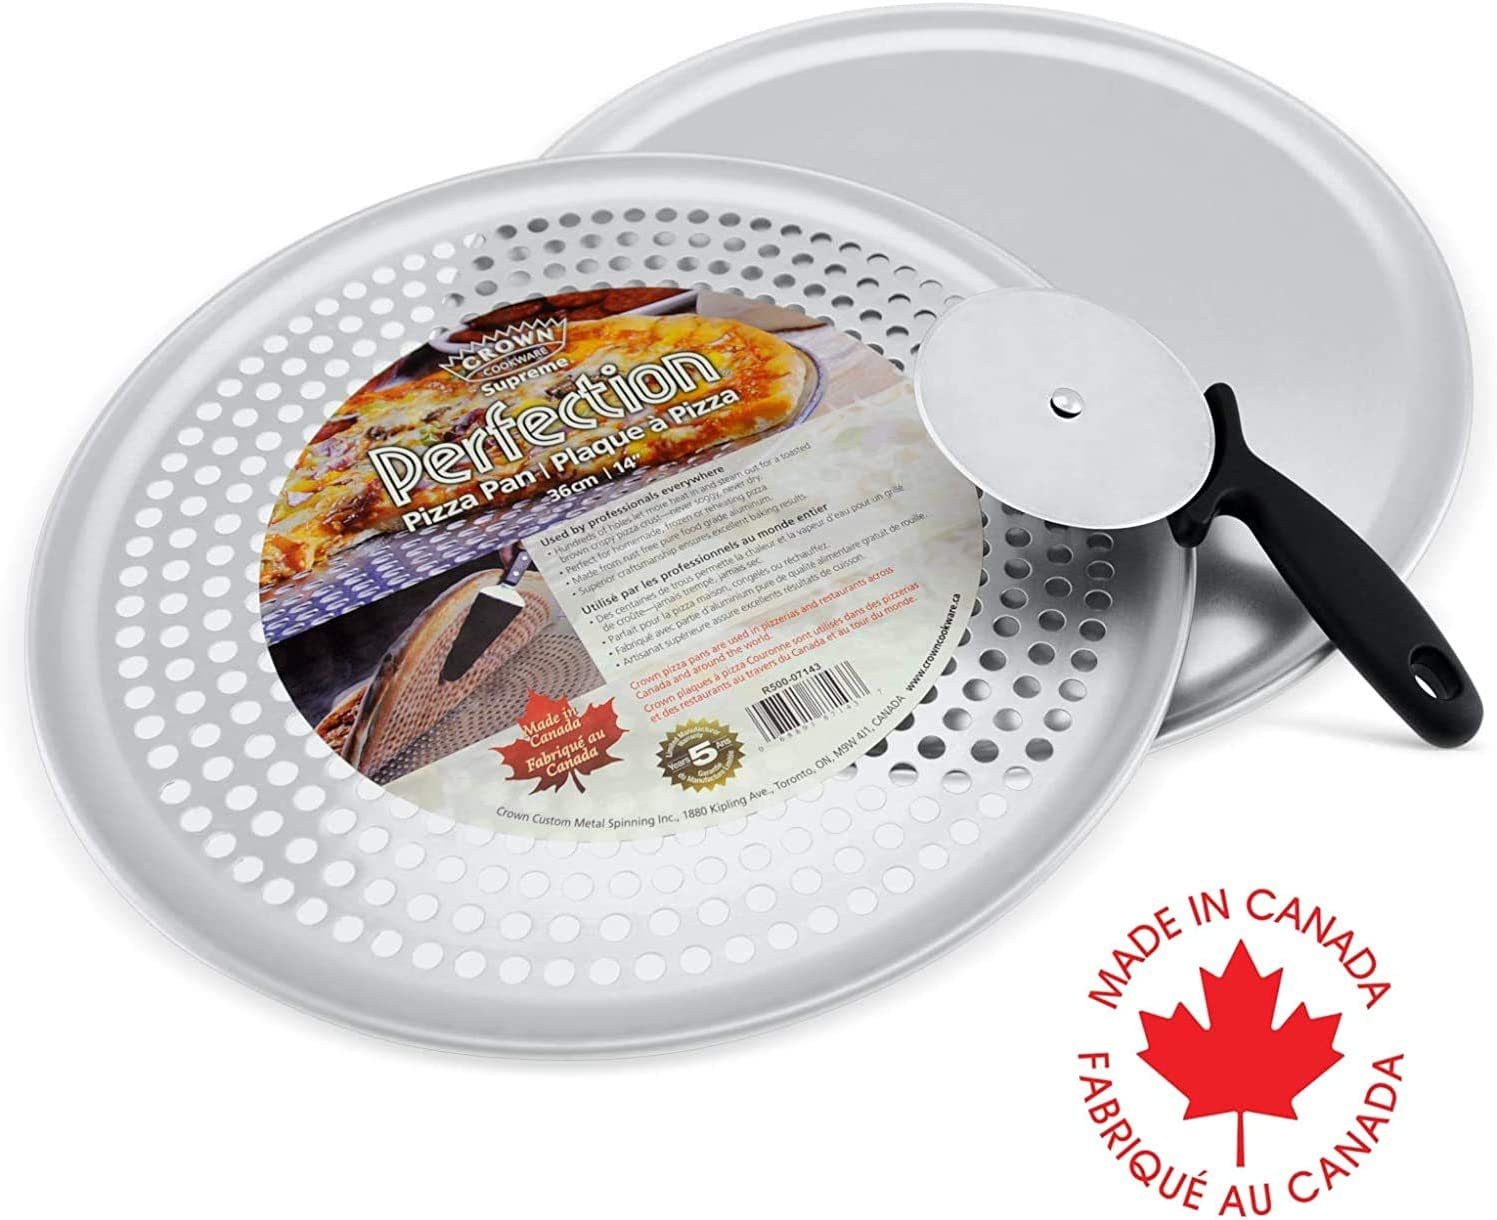 Crown Pizza Pan Set, Pizza Pan 14 inch, Pizza Pan with Holes 14 inch, Pizza Wheel Cutter, Heavy Duty, Rust Free, Pure Aluminum